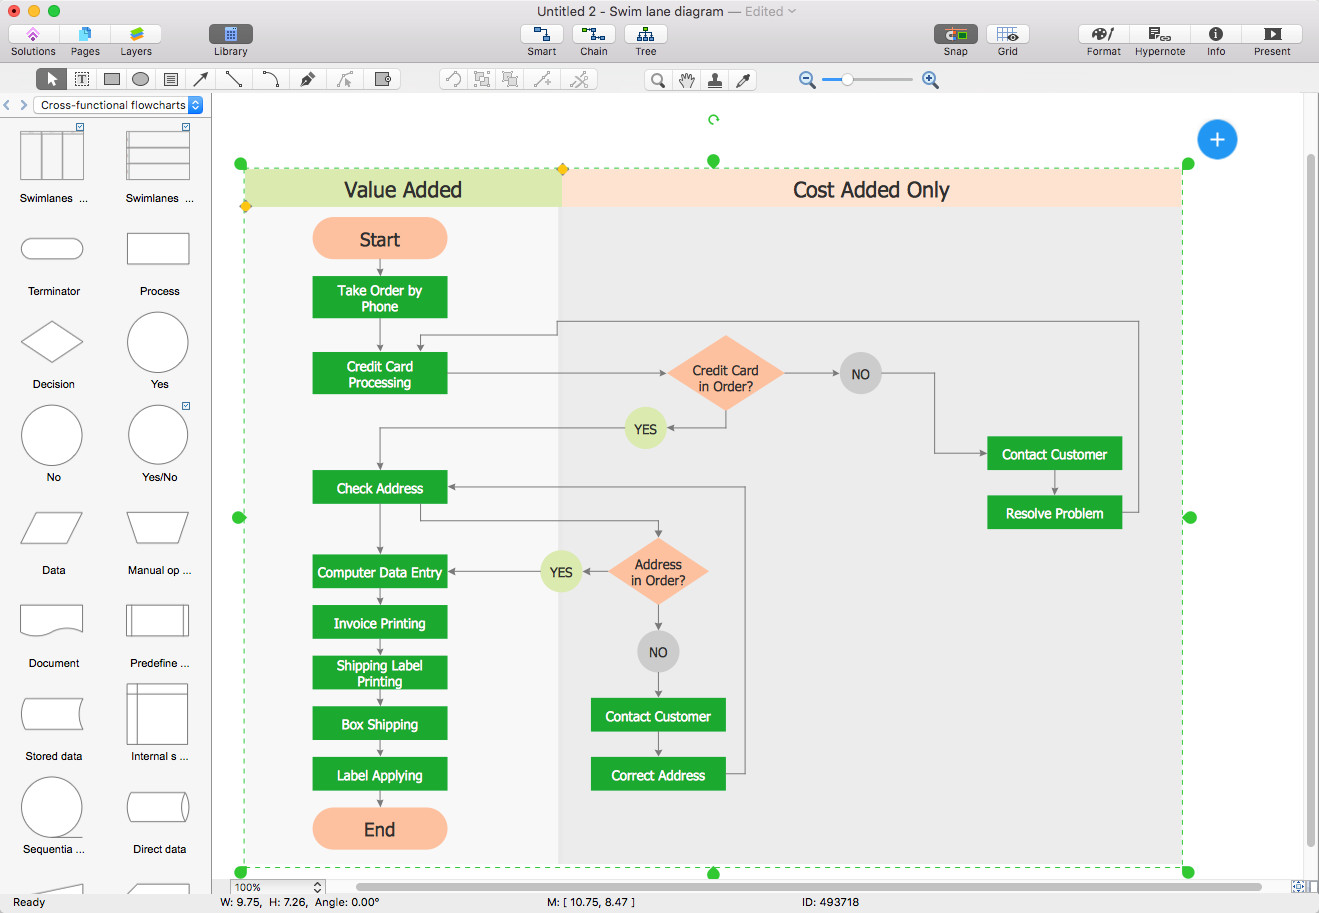 Visio Flow Chart Templates Create A Cross Functional Flowchart In Visio